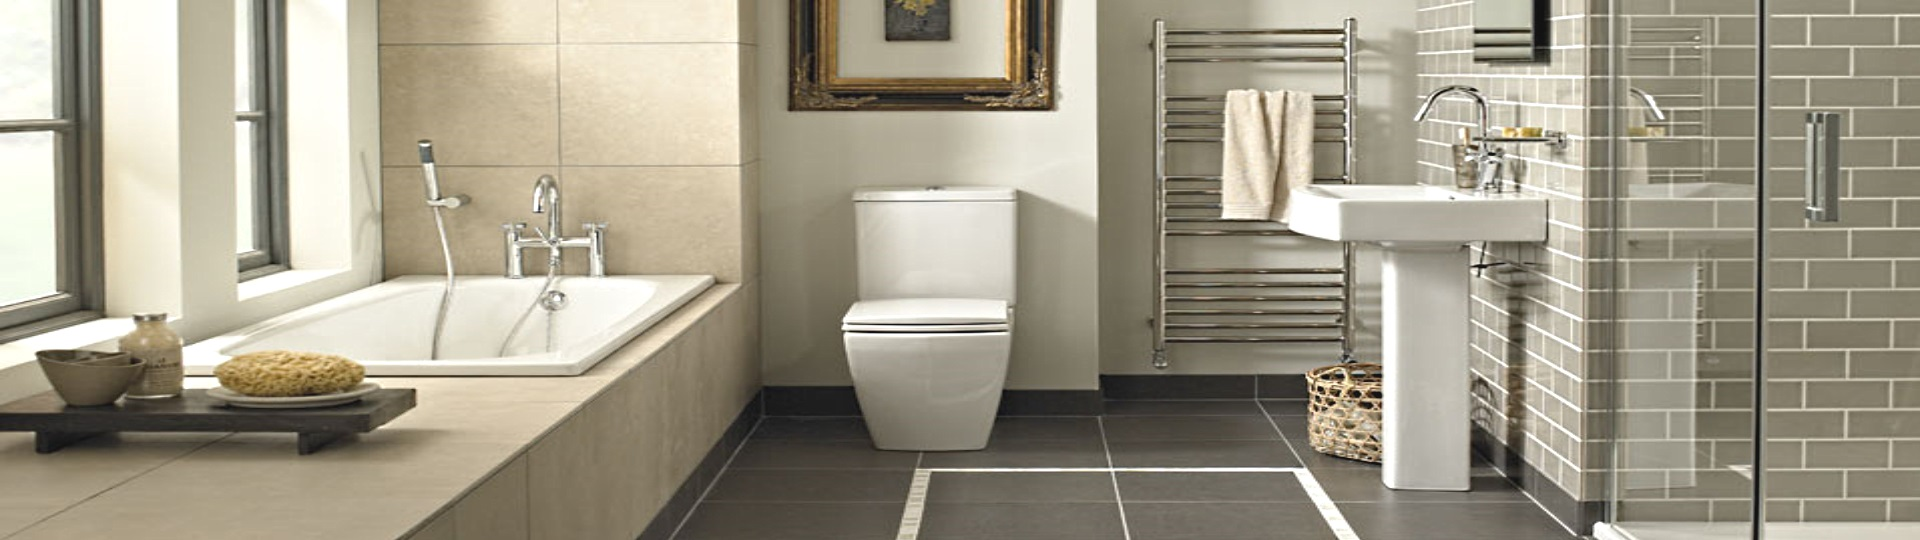 Bathroom Installation Arnos Vale, Arnos Vale Bathroom Installers